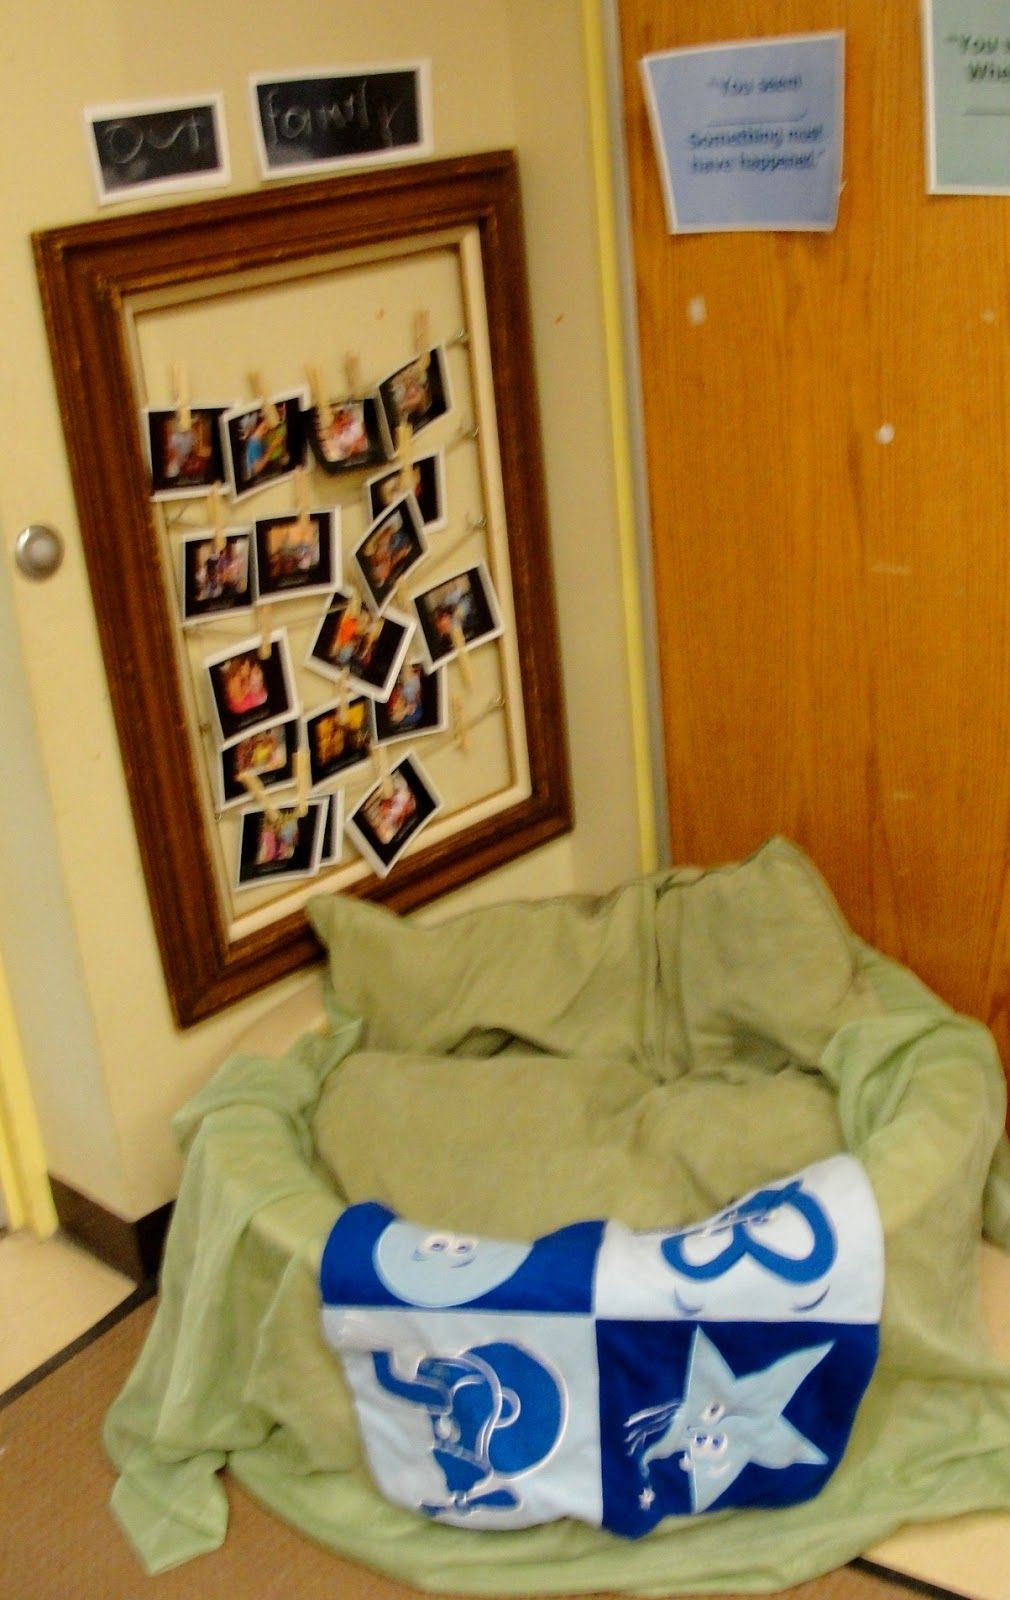 Familiy Boards:The family boards are placed by our safe zone so that when a child needs to have a picture of their family it is readily available. via: http://reggioinspiredteacher.blogspot.co.uk/2013/03/image-of-child.html